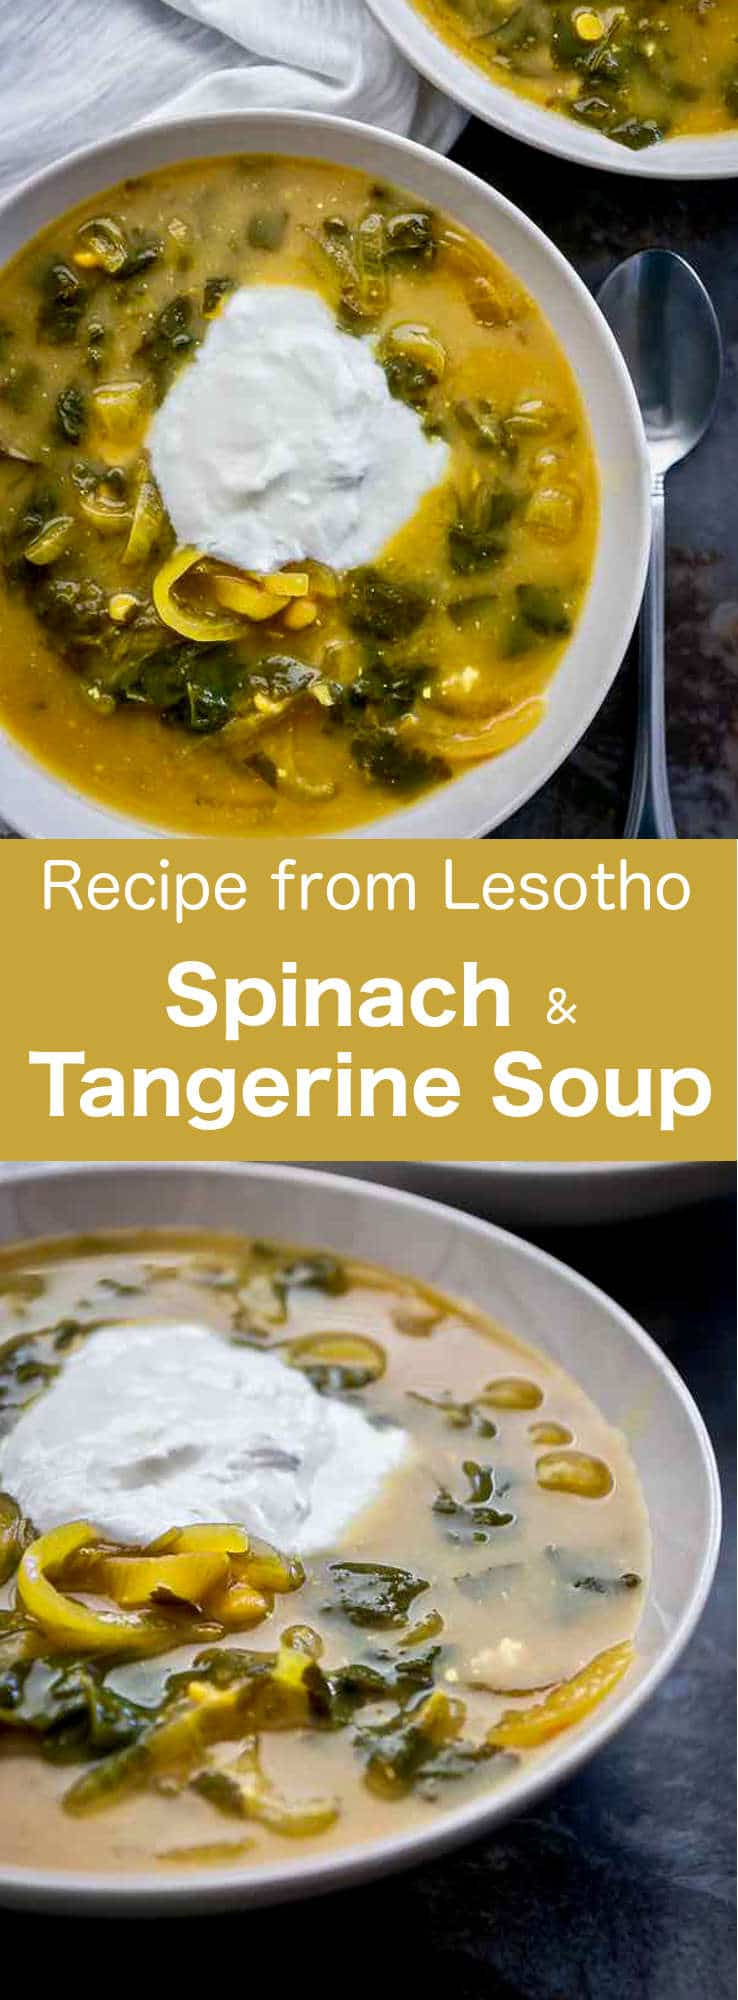 Spinach and tangerine soup is a traditional recipe from Lesotho that combines the sweetness and sourness of the citrus with the earthiness of spinach. #soup #Lesotho #Africa #SouthAfrica #196flavors